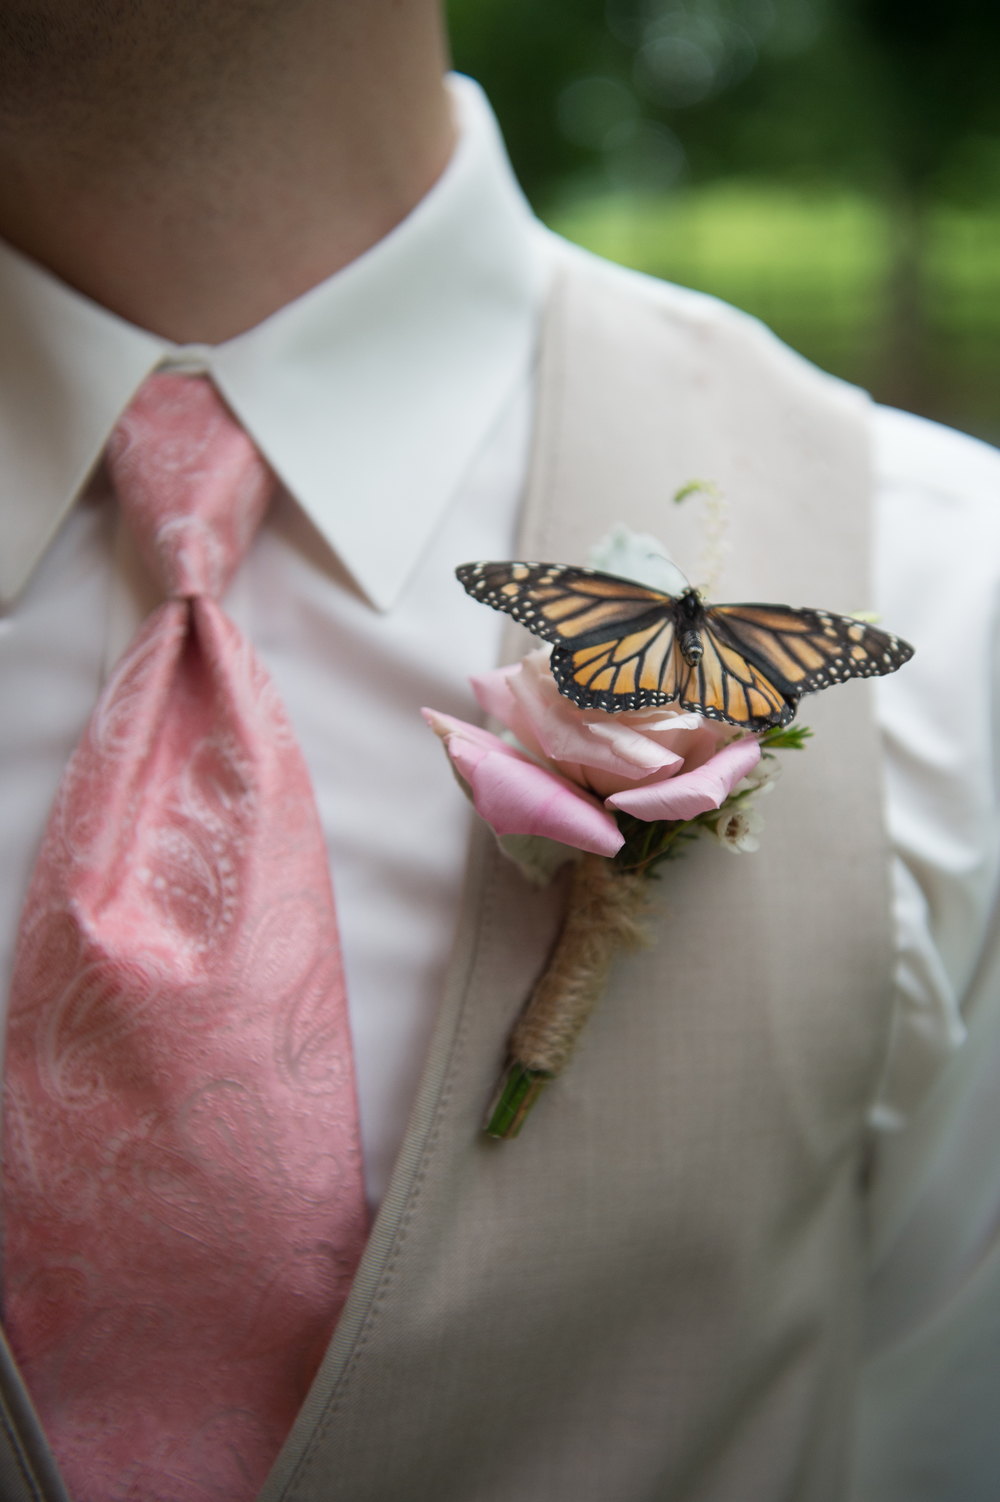 Photocredit: Amberlee Christey                               After this couple's butterfly release, the groom had an addition                                                                                                                          to his boutonniere look.